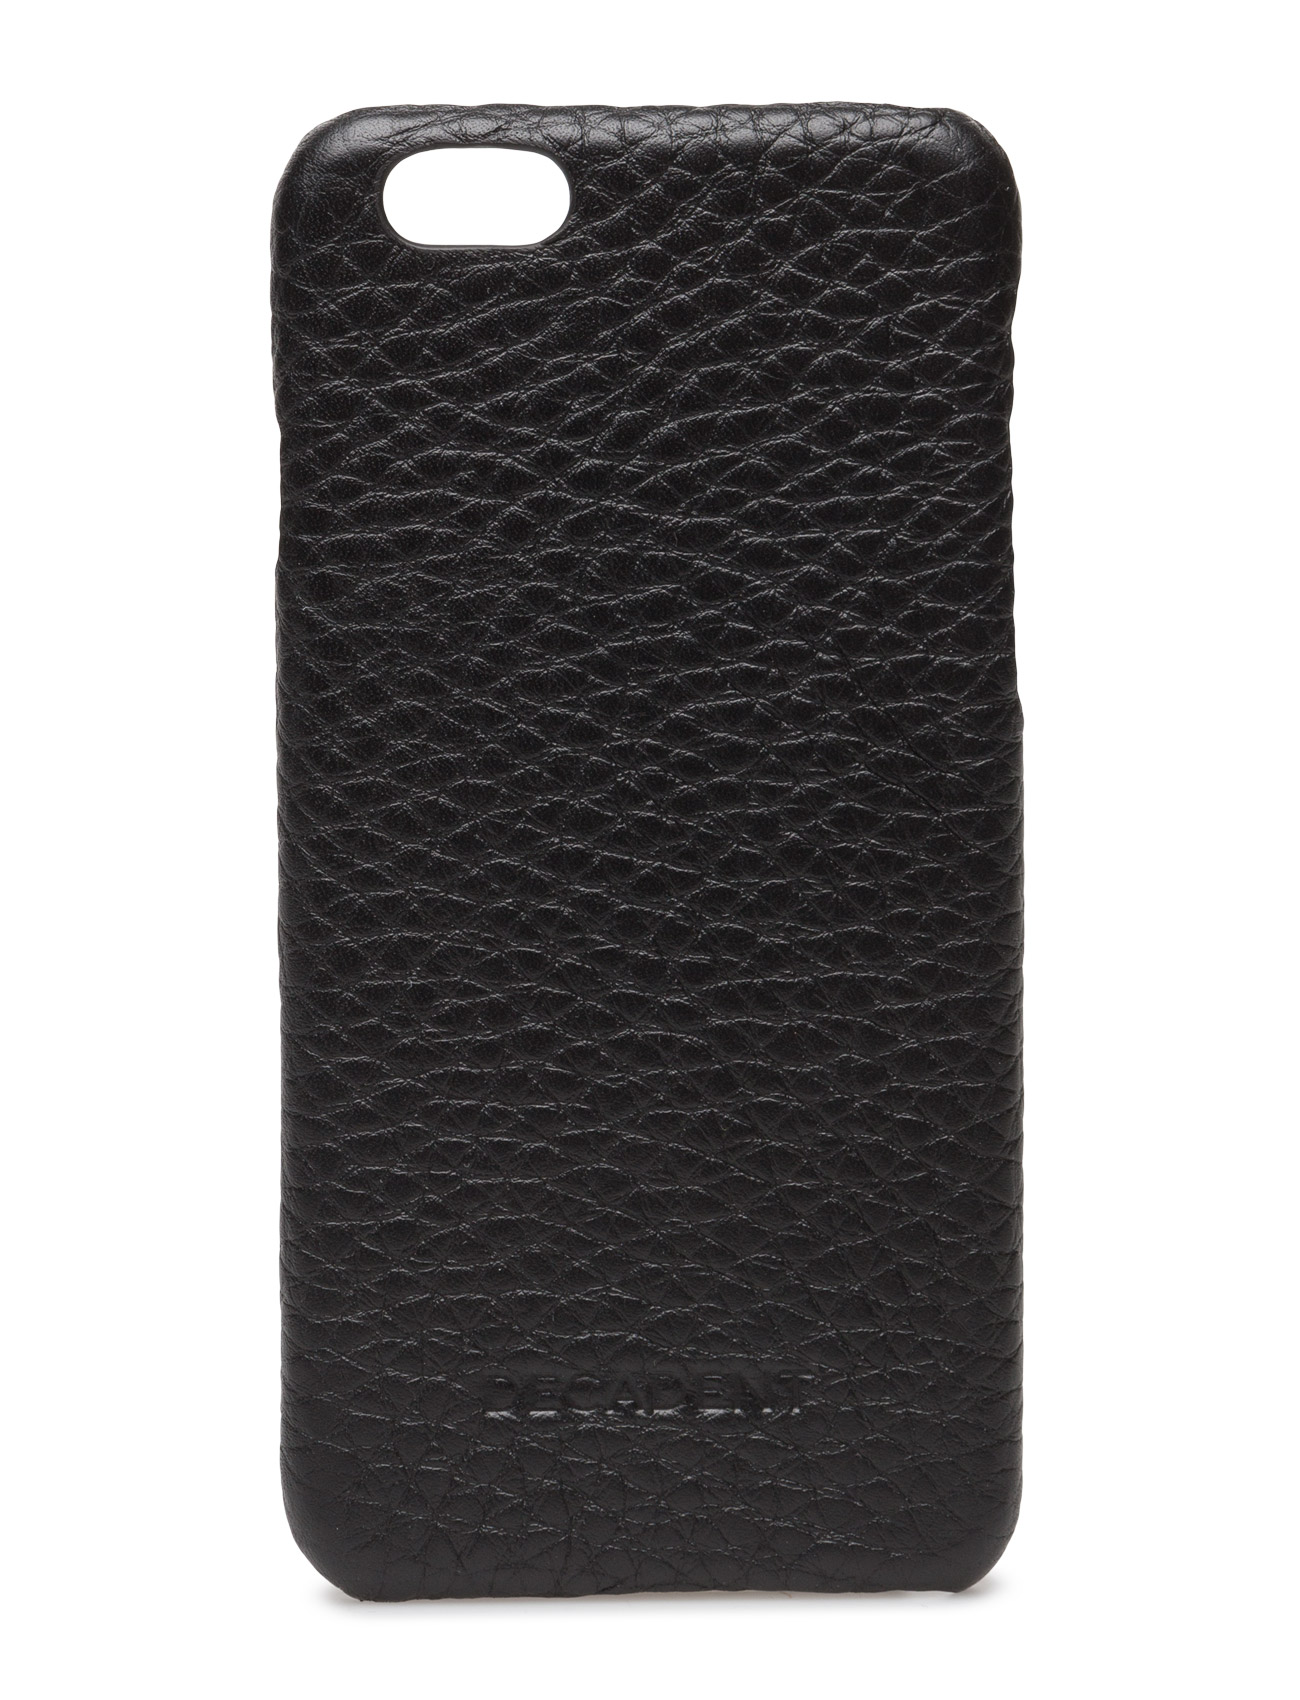 Iphone 6 Cover Decadent Accessories til Kvinder i